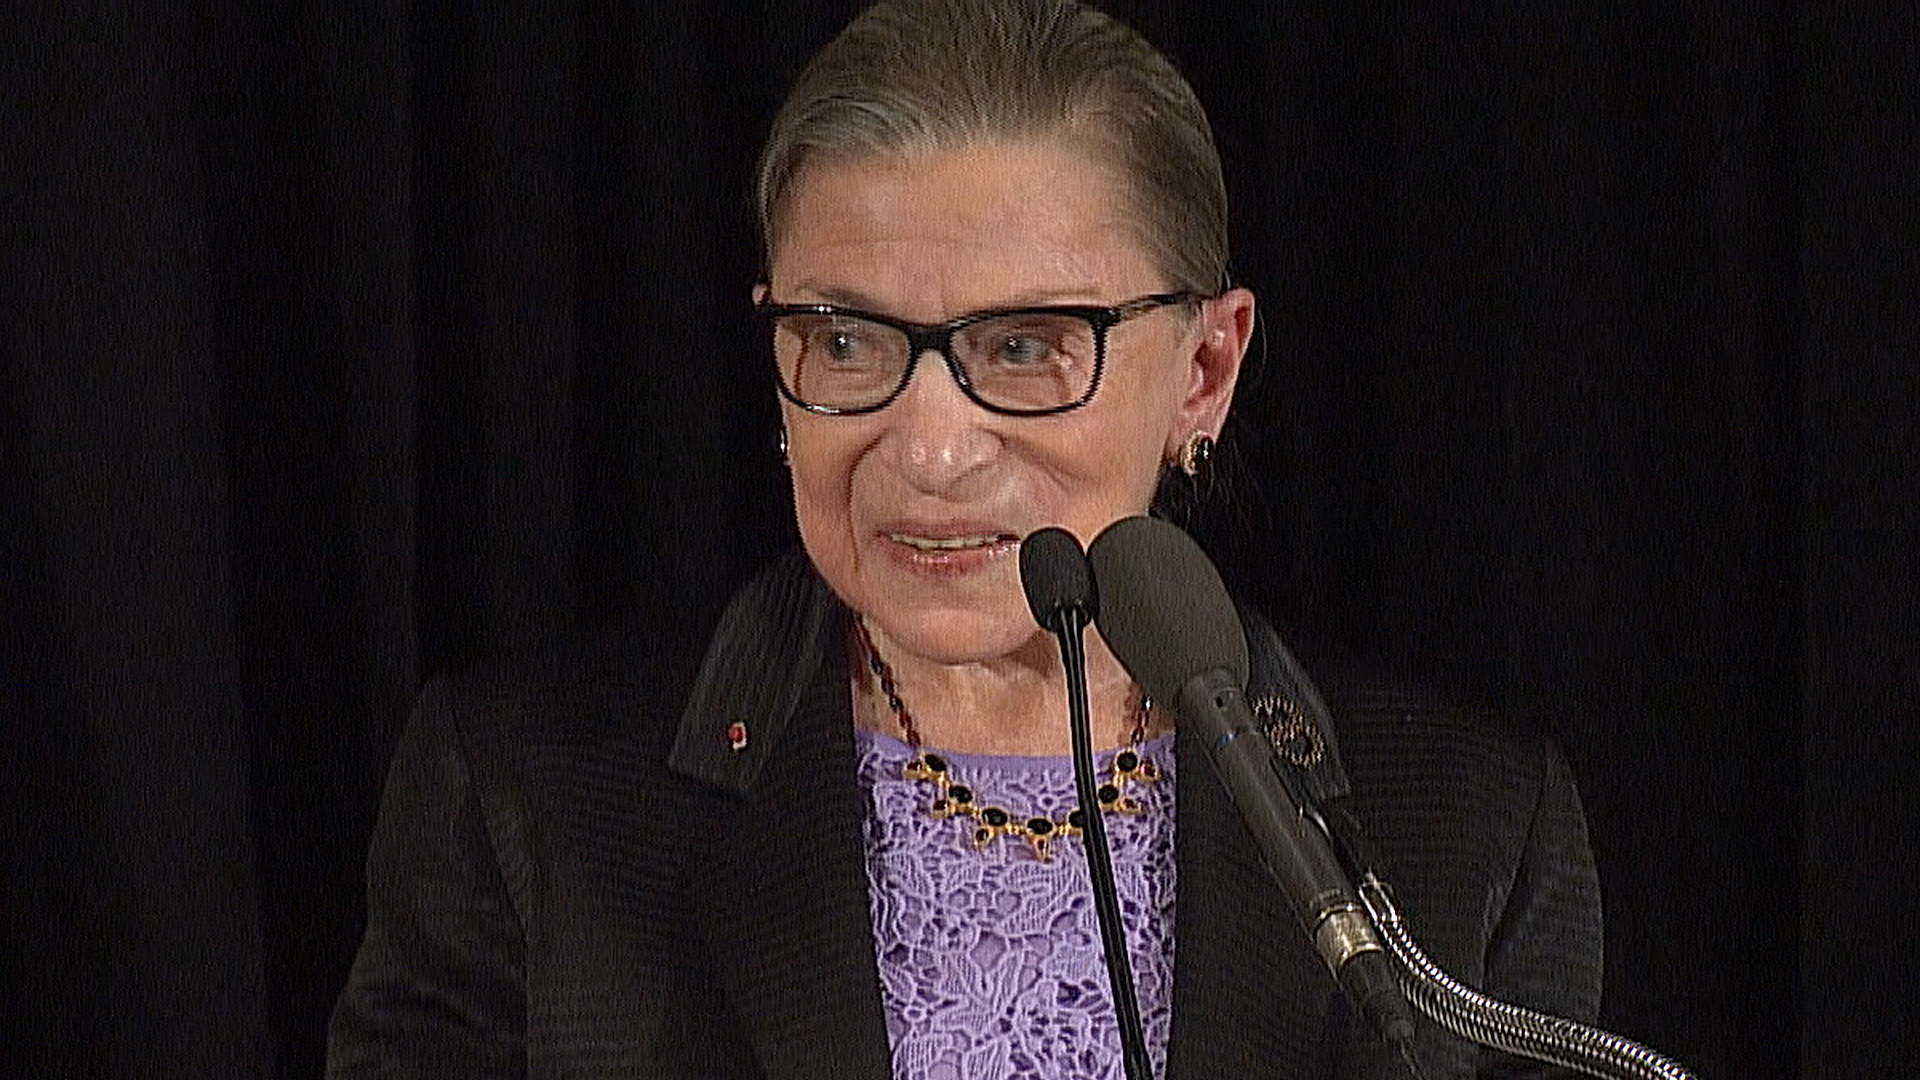 Ruth Bader Ginsburg on Scalia's Role in Getting Her on High Court